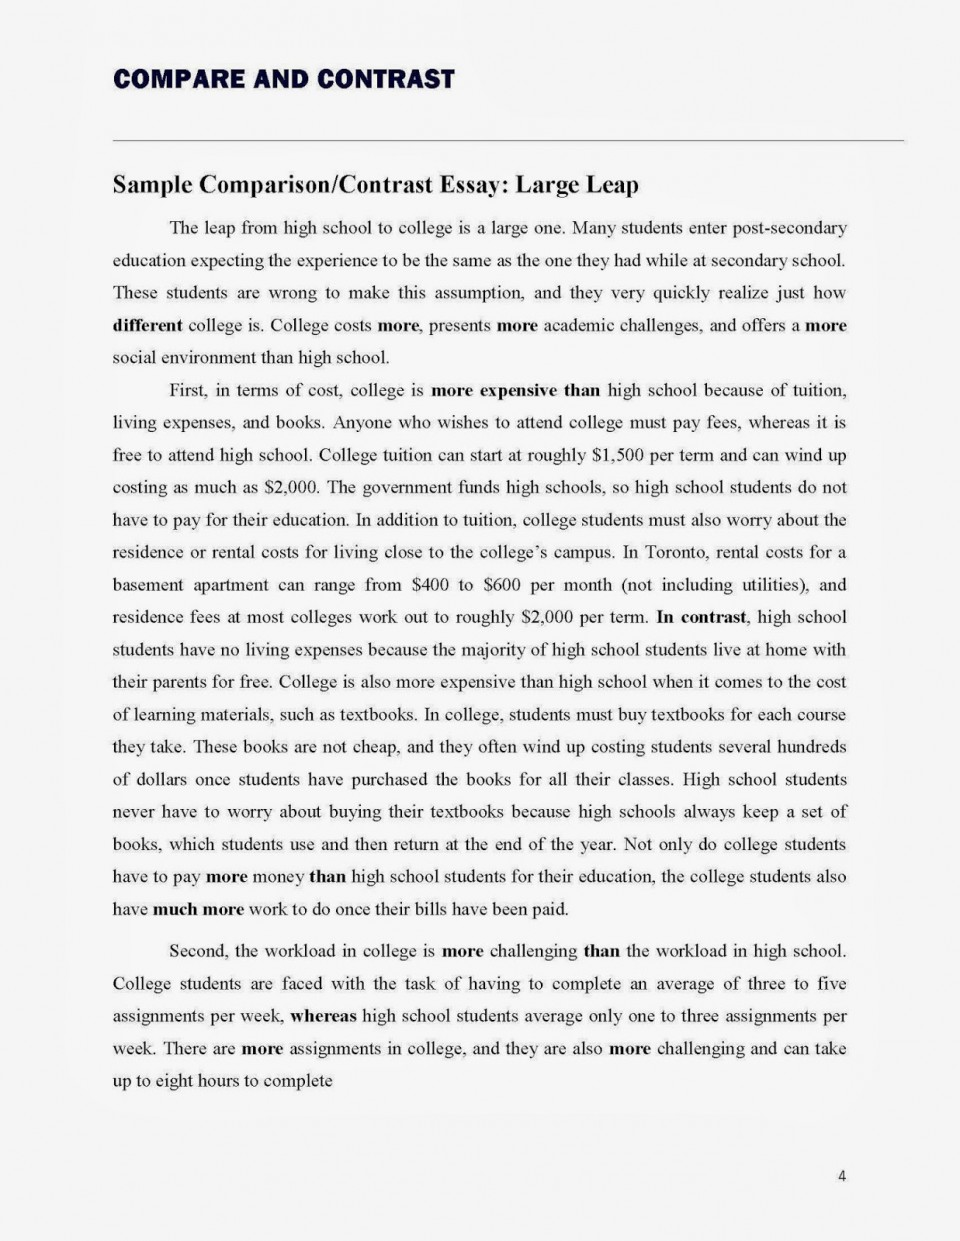 011 Good Compare And Contrast Essay Compare20and20contrast20essay Page 4 Unbelievable Title Generator Examples High School Titles 960